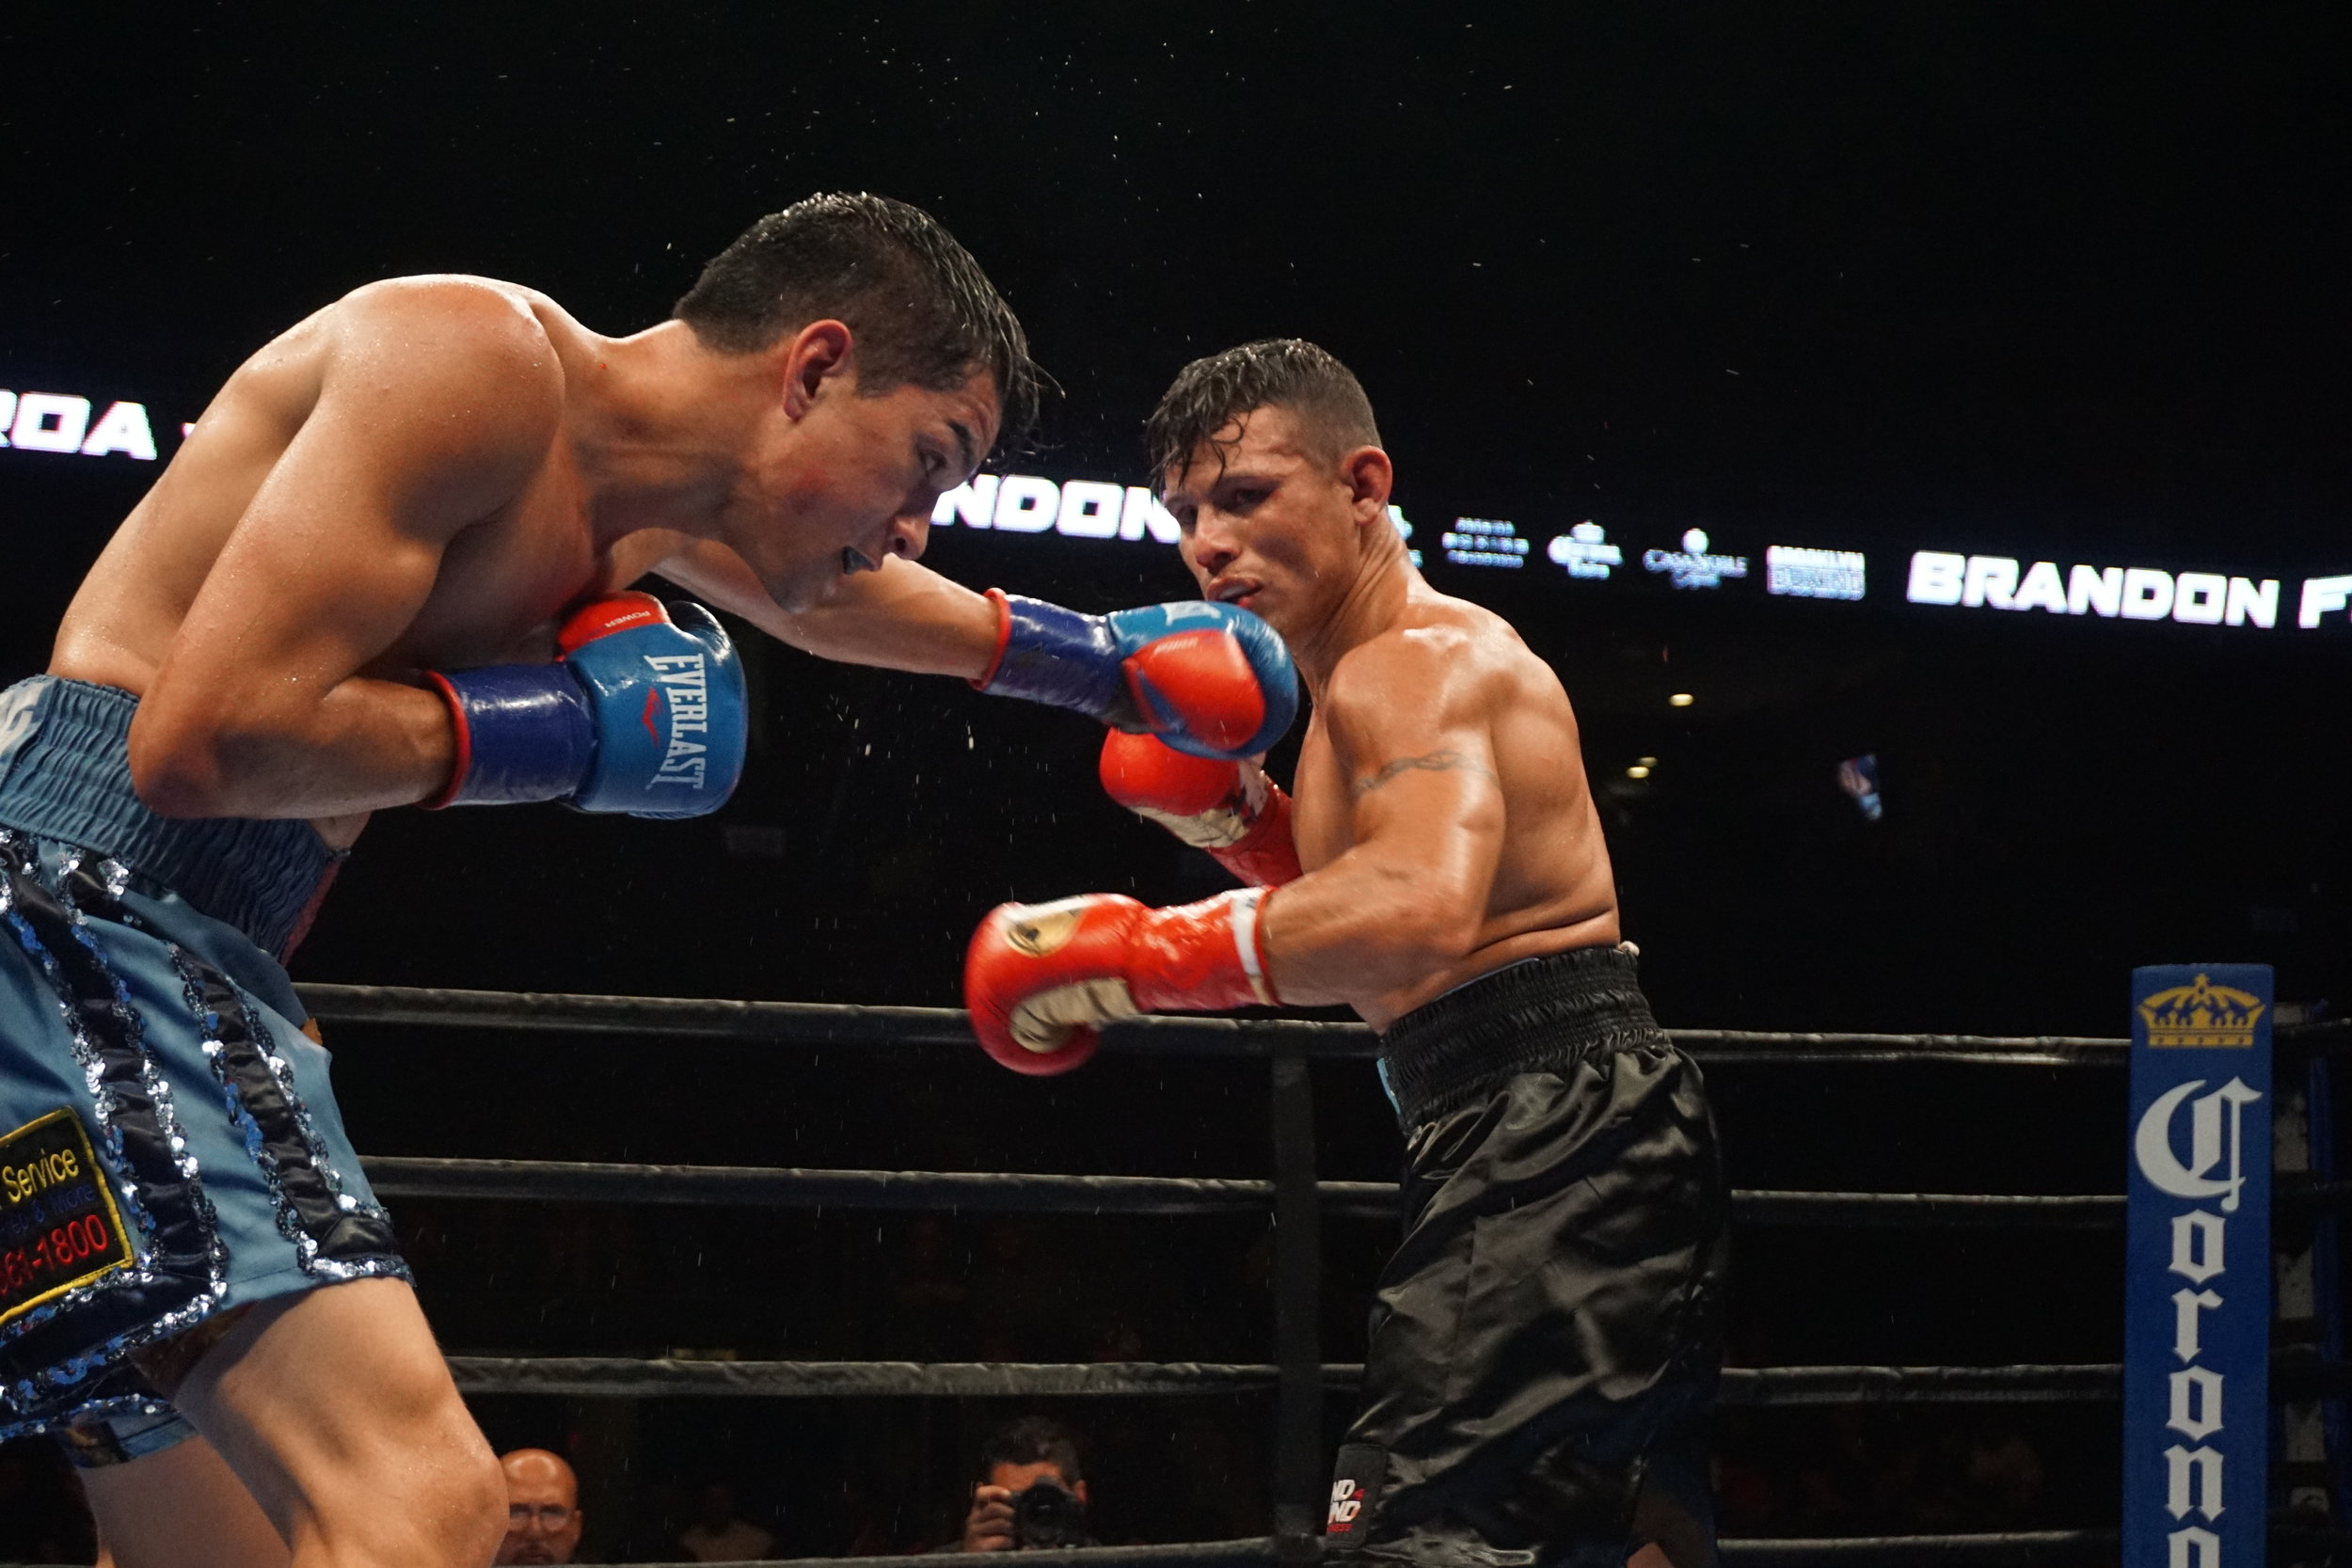 Figueroa throws a left jab by Andrea Antolini